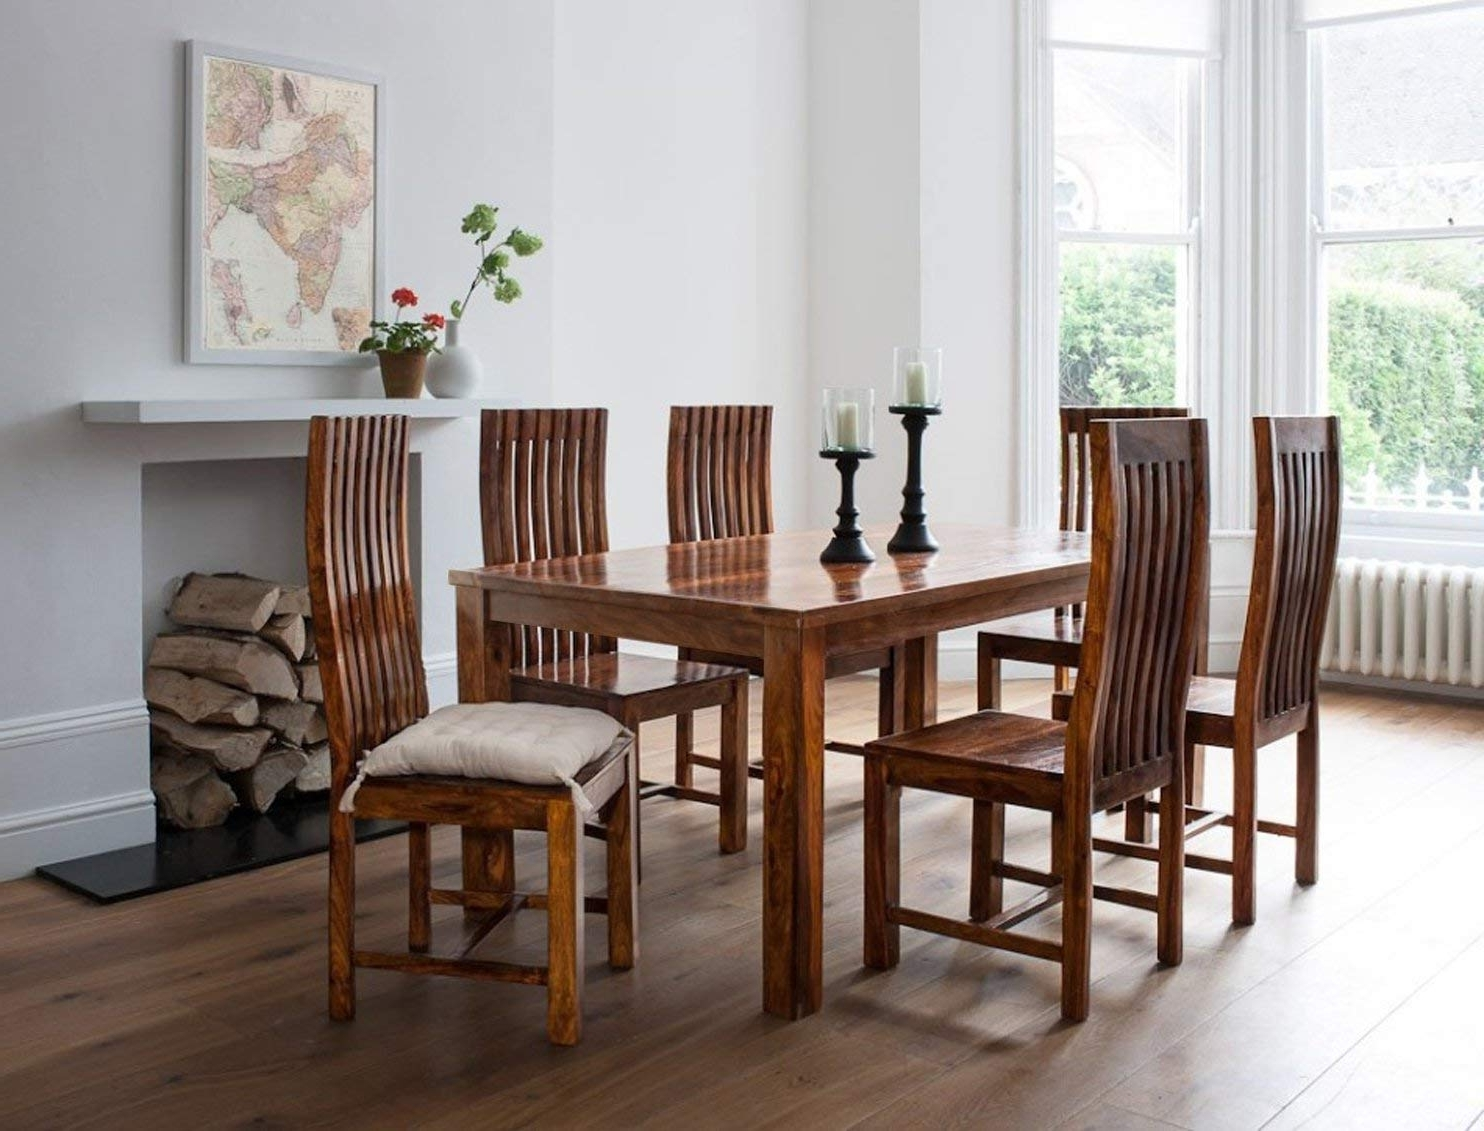 Lifeestyle Handcrafted Sheesham Wood 6 Seater Dining Set (Honey Throughout Well Known Sheesham Dining Chairs (View 13 of 25)